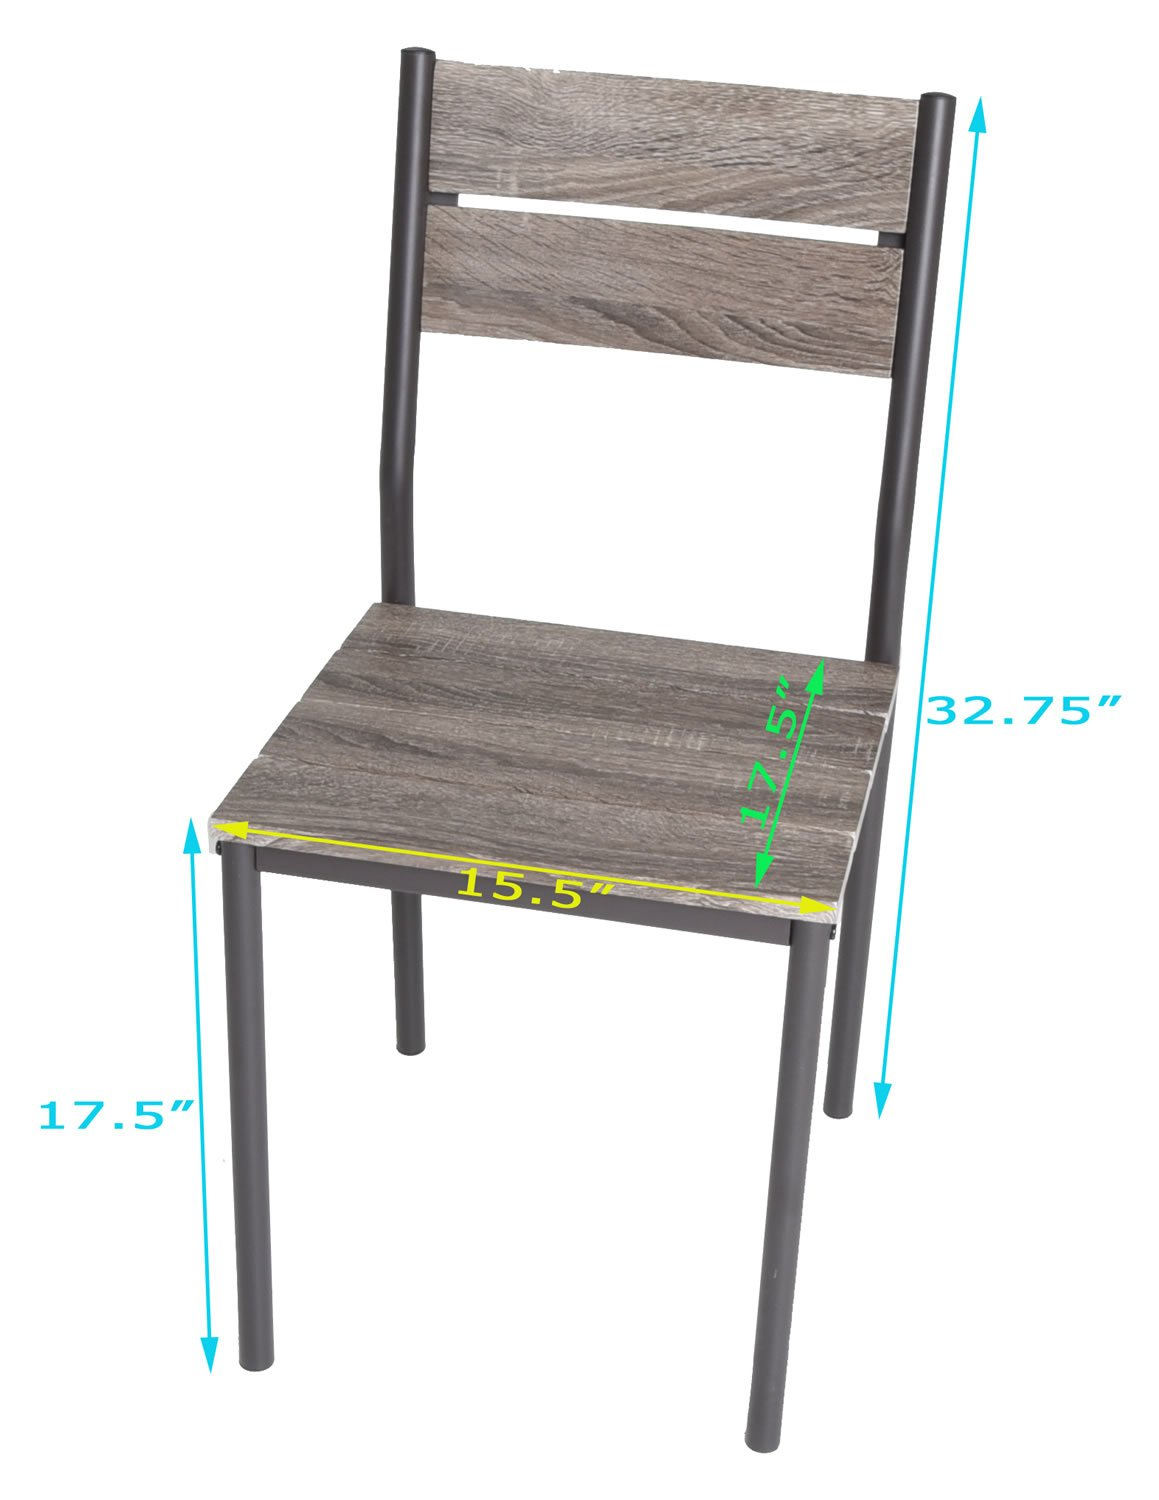 Zenvida 5 Piece Dining Set Rustic Grey Wooden Kitchen Table and 4 Chairs by Zenvida (Image #8)